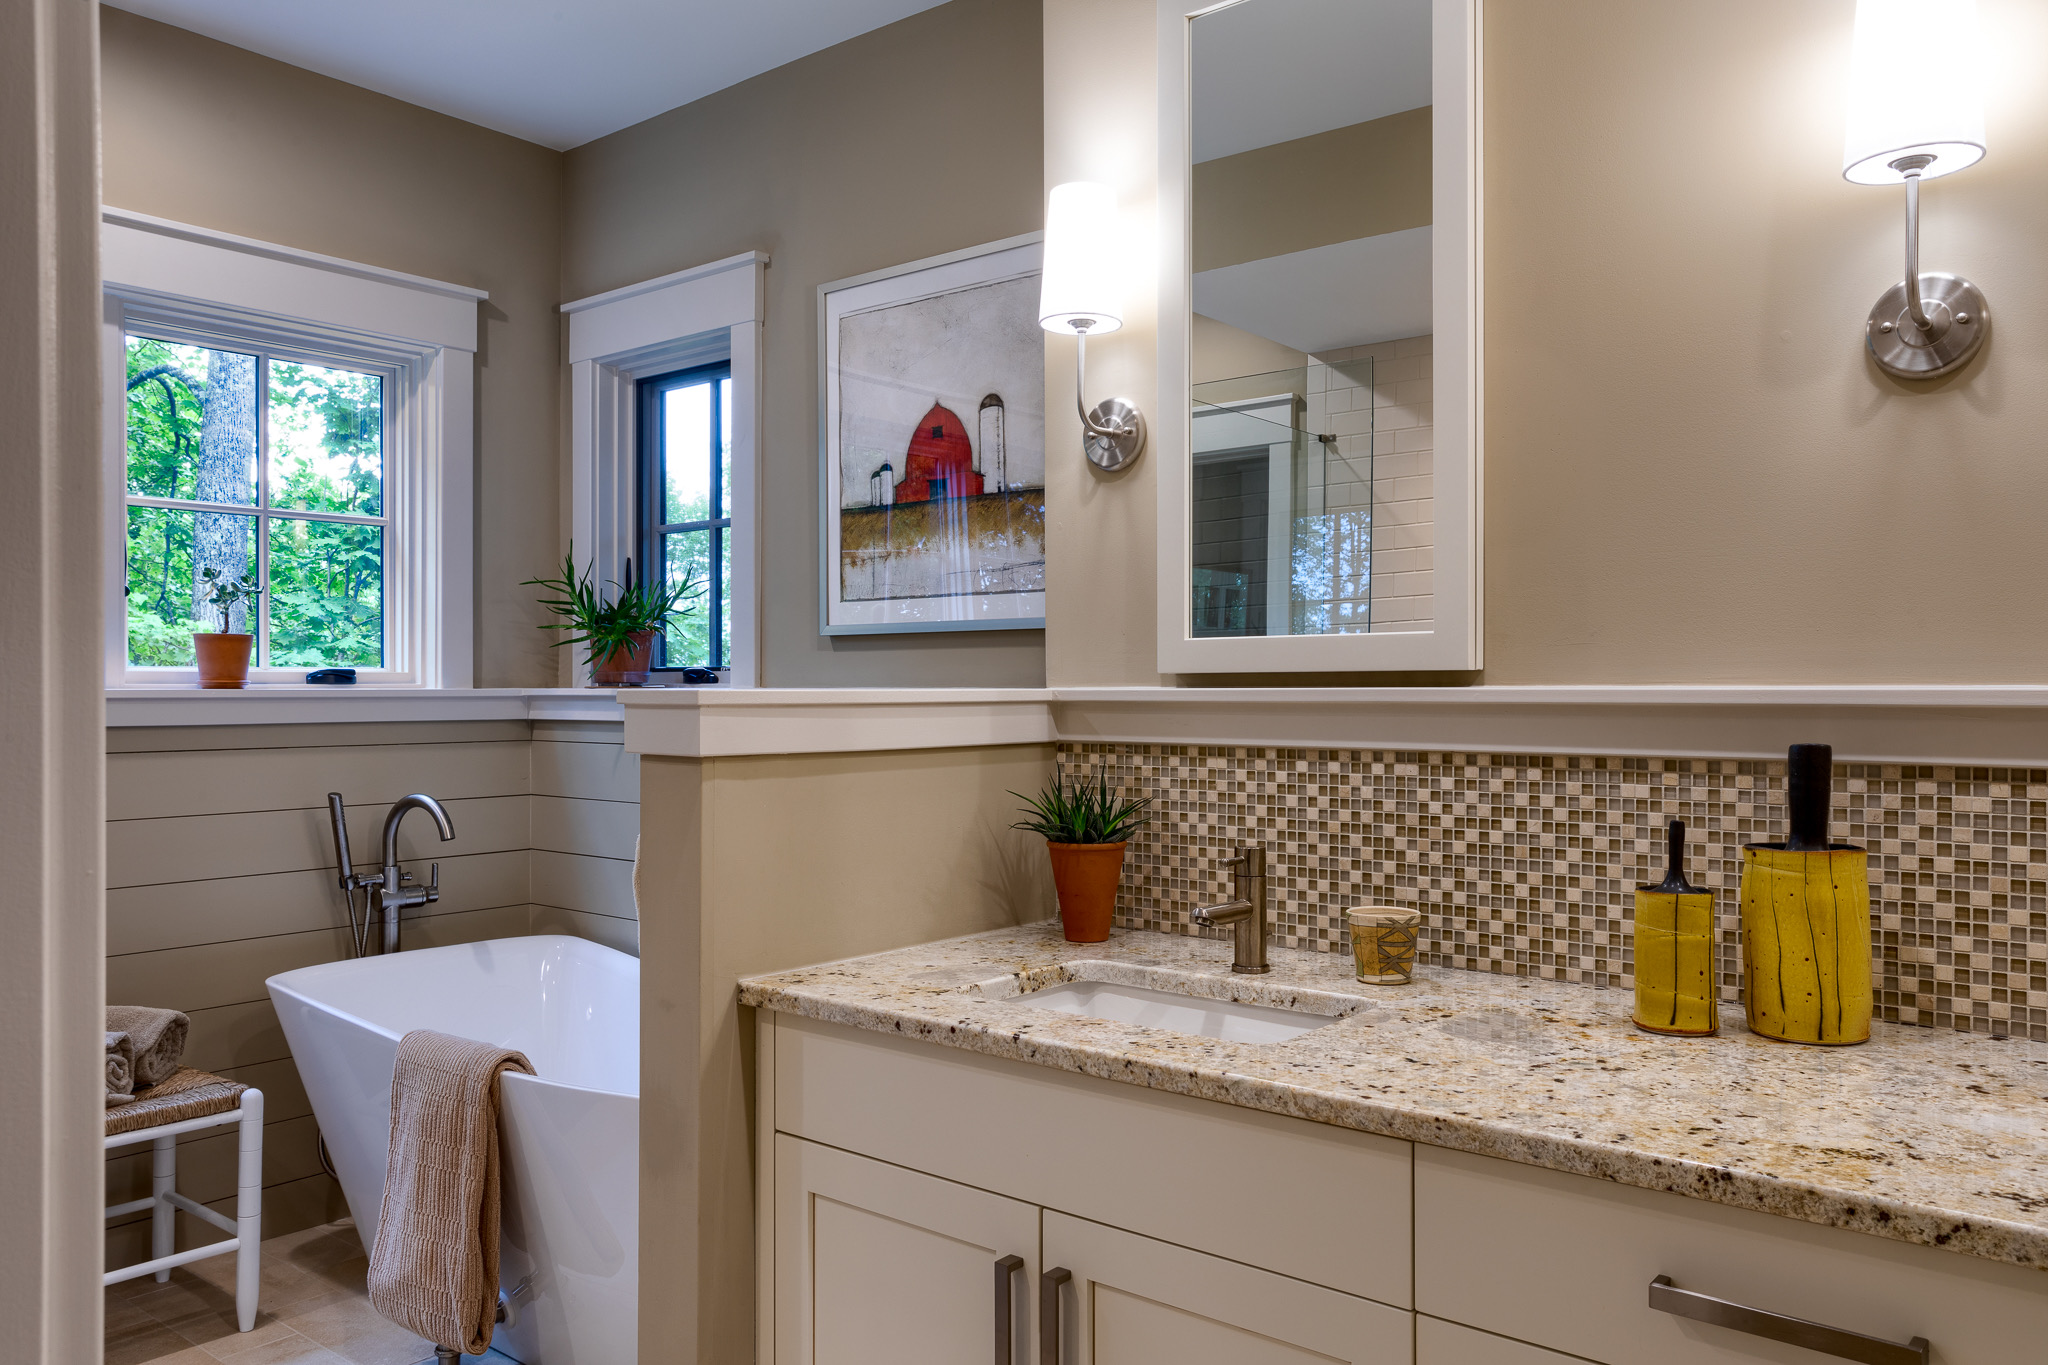 Master bathroom with double vanities and freestanding tub with halfwall separating the two